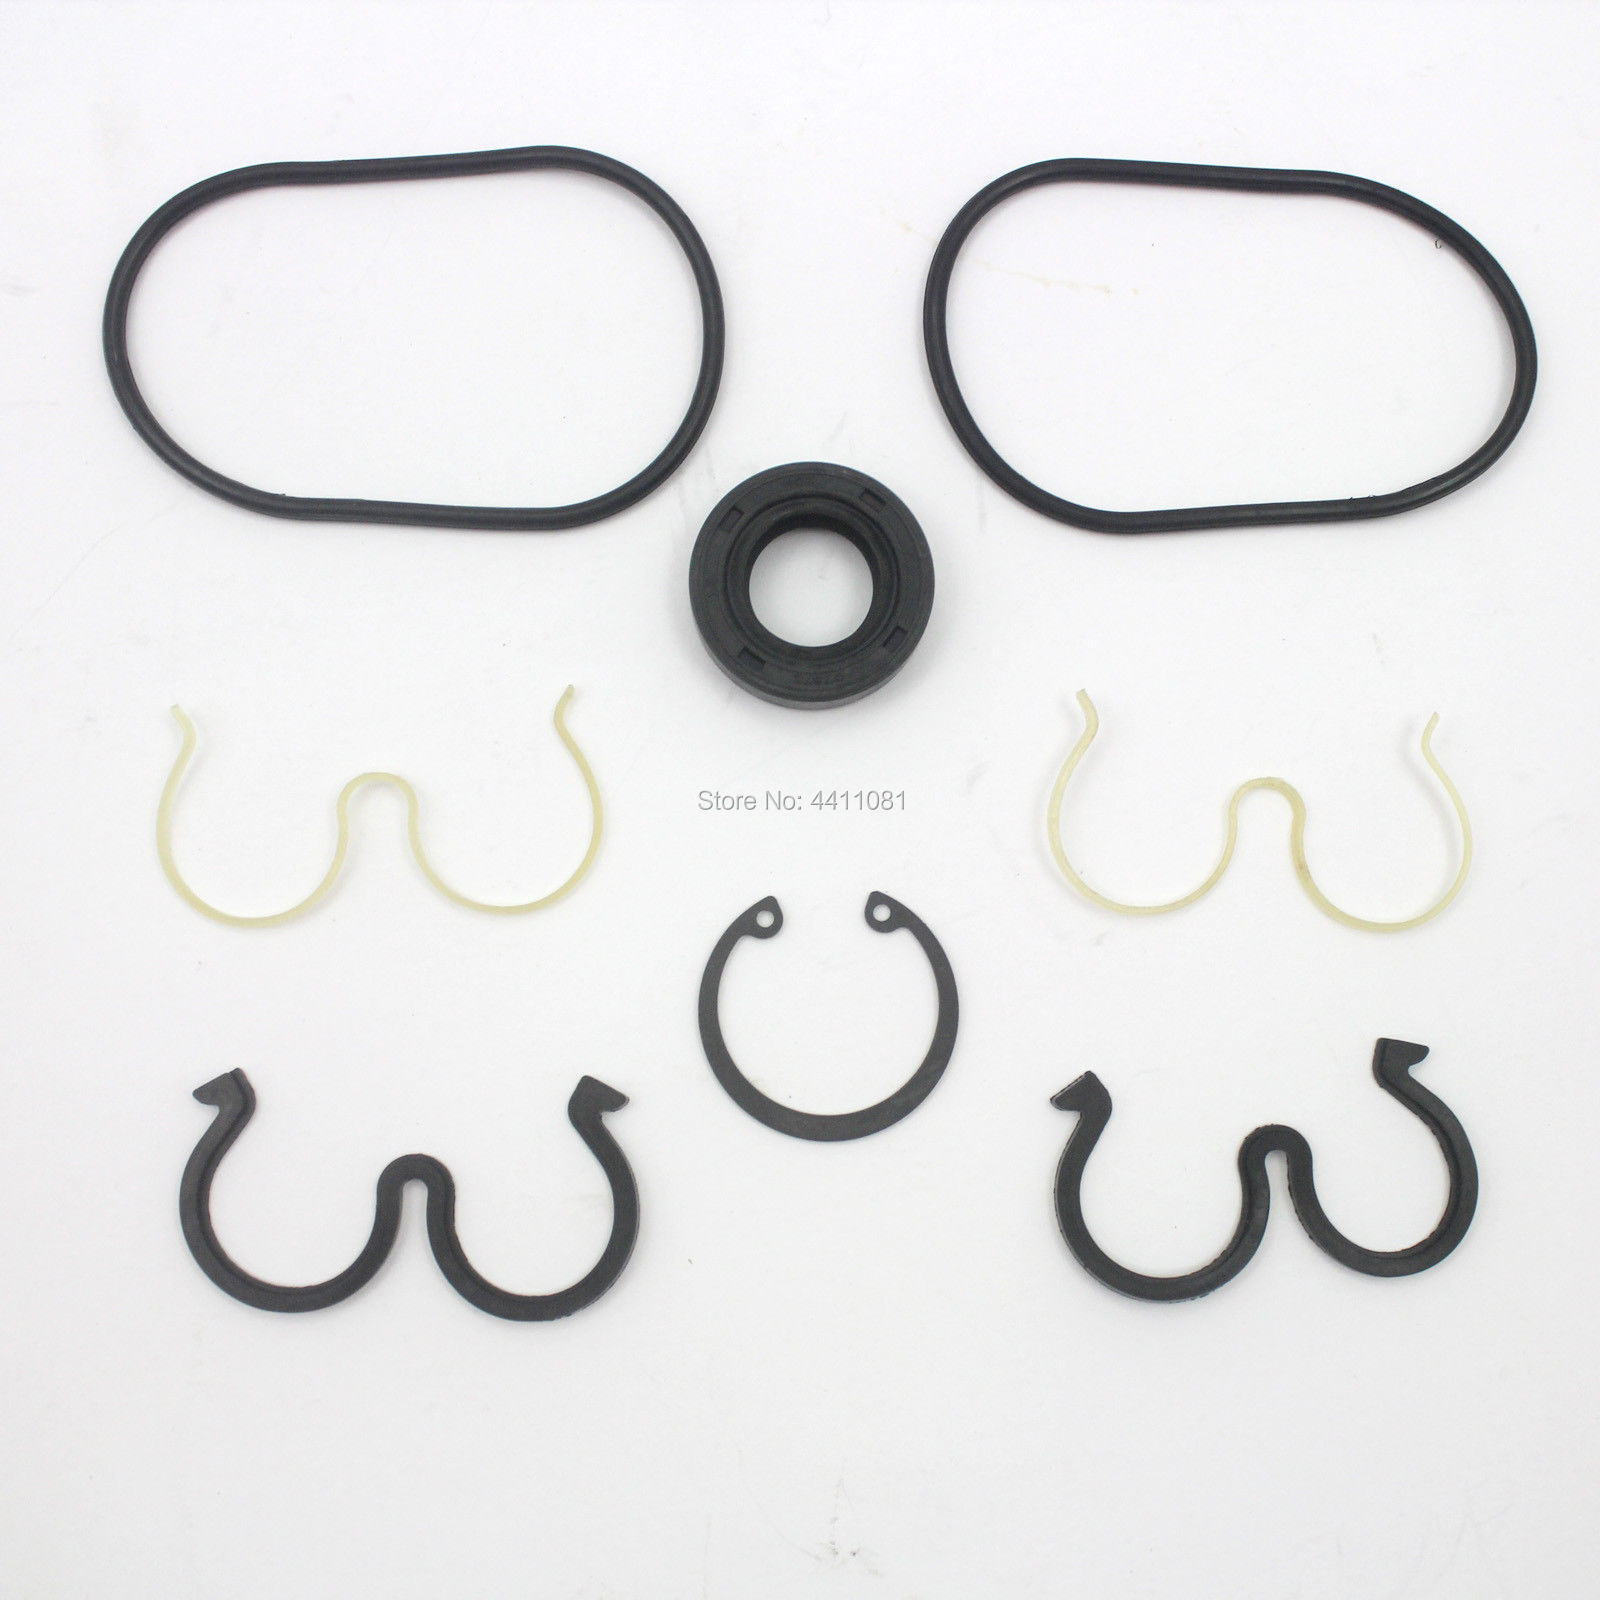 For Hitachi EX60-5 Gear Pump Seal Repair Service Kit Excavator Oil Seals, 3 month warranty